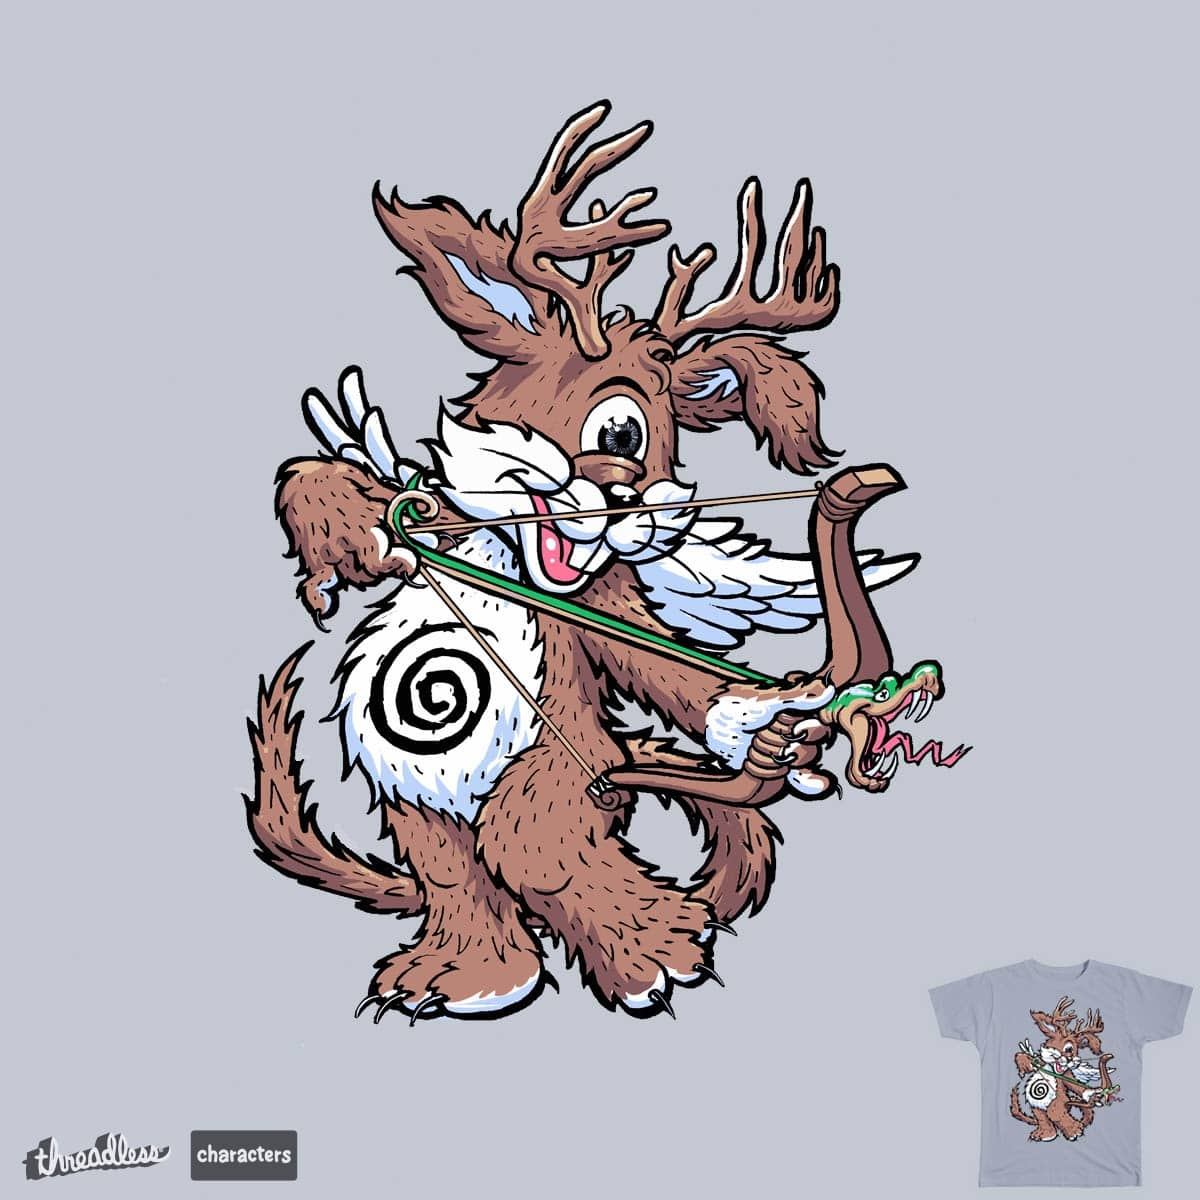 spirit of  the forest by choubaka360 on Threadless